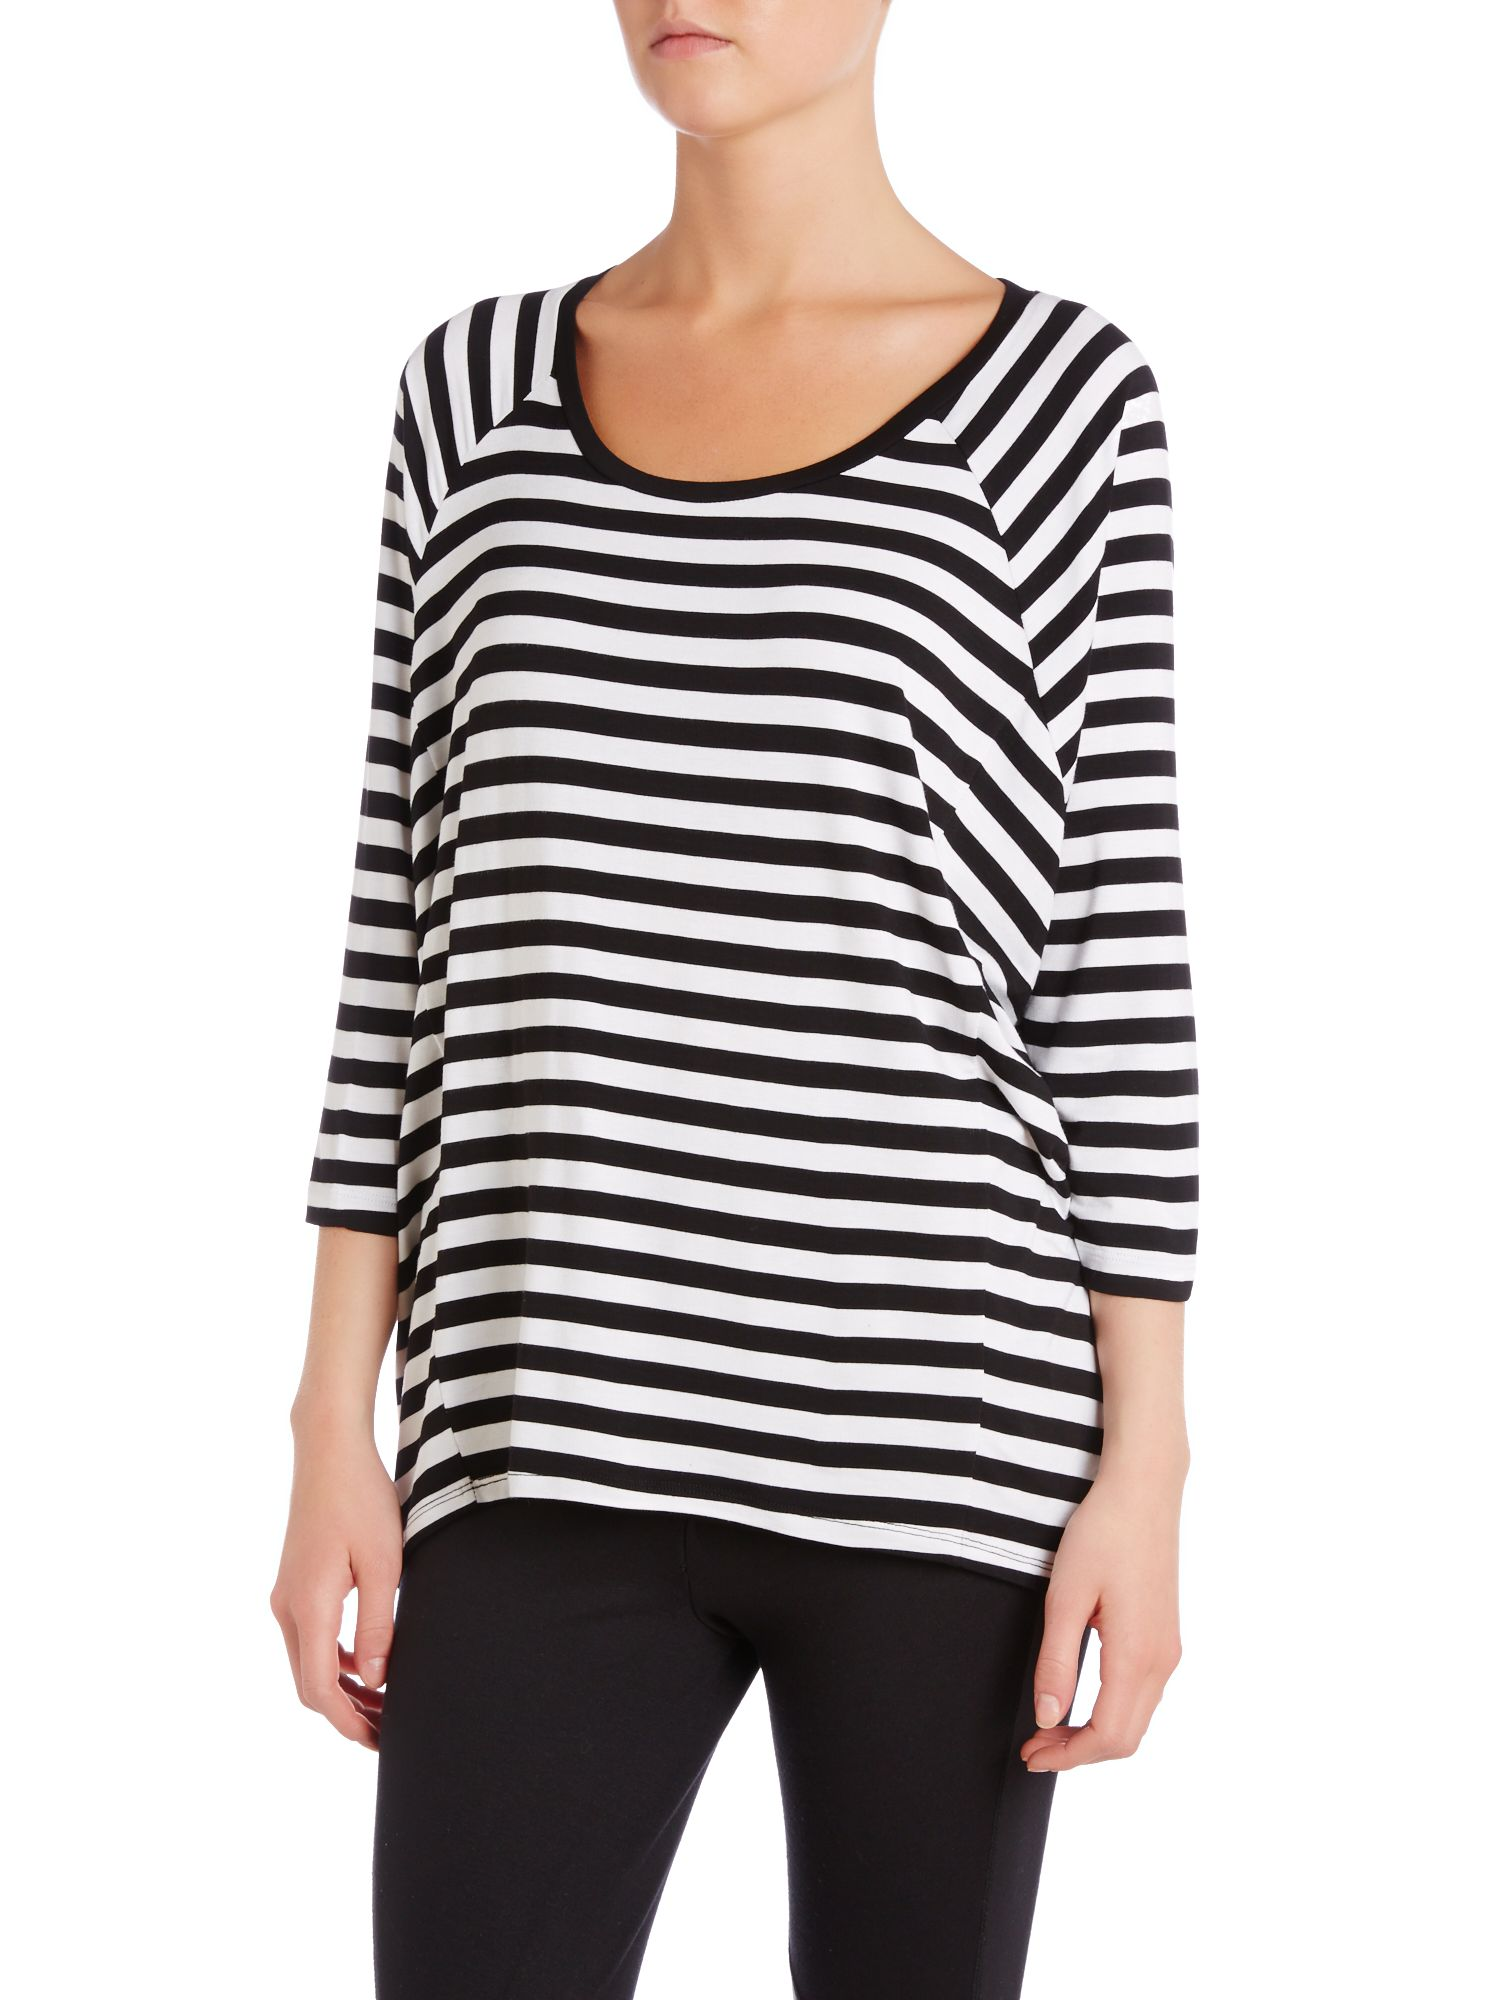 3/4 sleeved striped top with elip hem